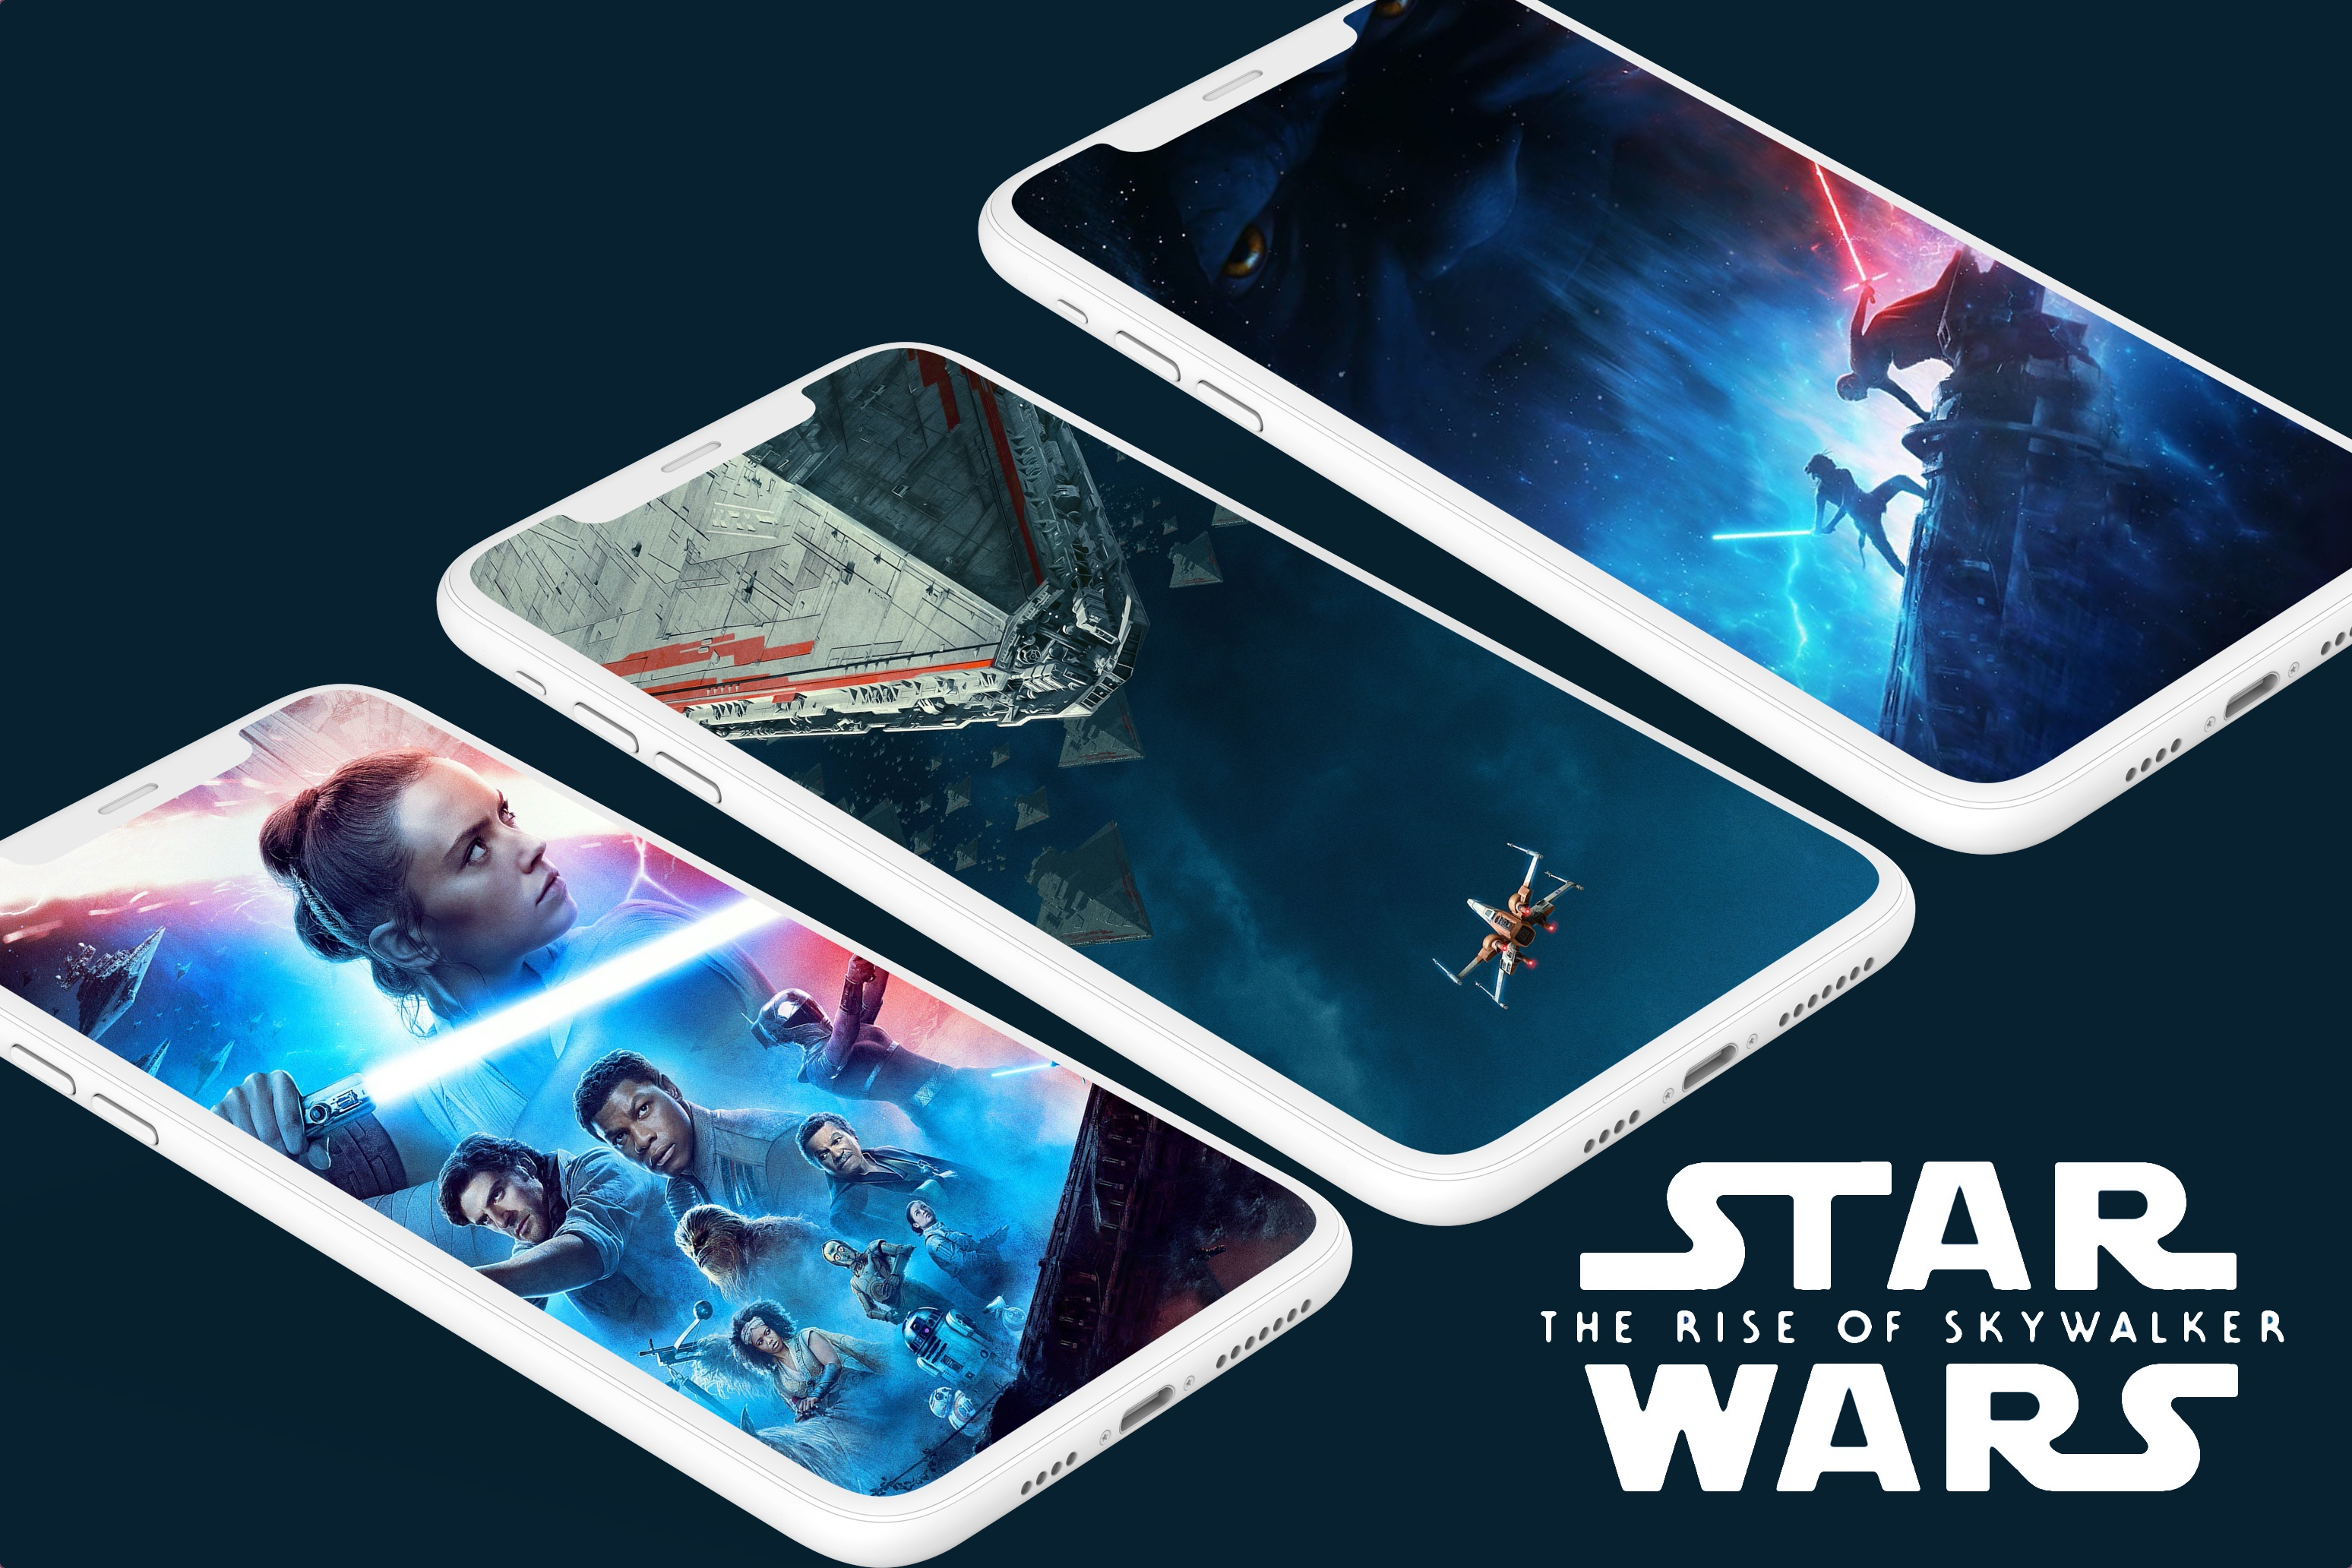 Star Wars Rise of Skywalker iPhone wallpaper idownloadblog mockup